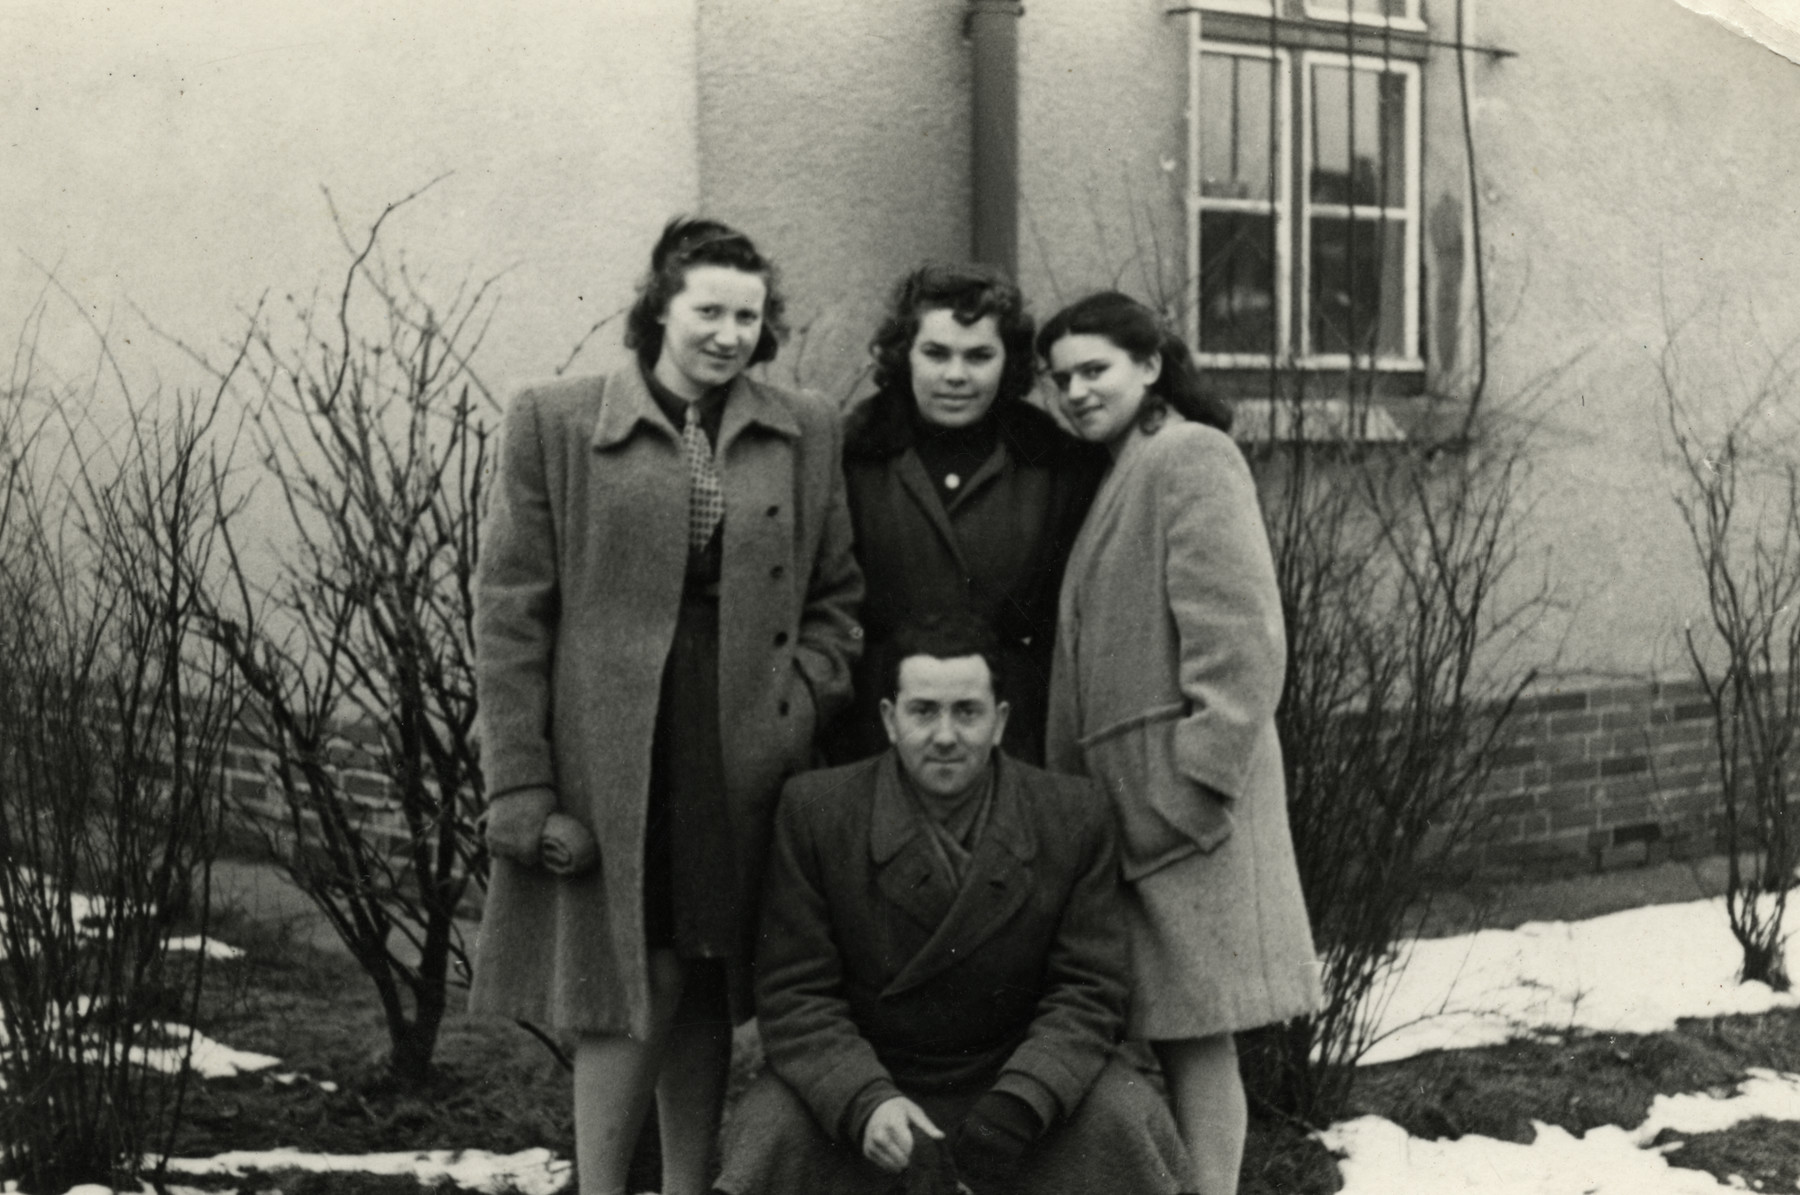 Friends pose in front of a building in the Bergen-Belsen displaced persons' camp.   Pictured are Lili Deutsch (top left) wearing a coat made from a blanket, her sister Esther, and friend Leib (bottom).